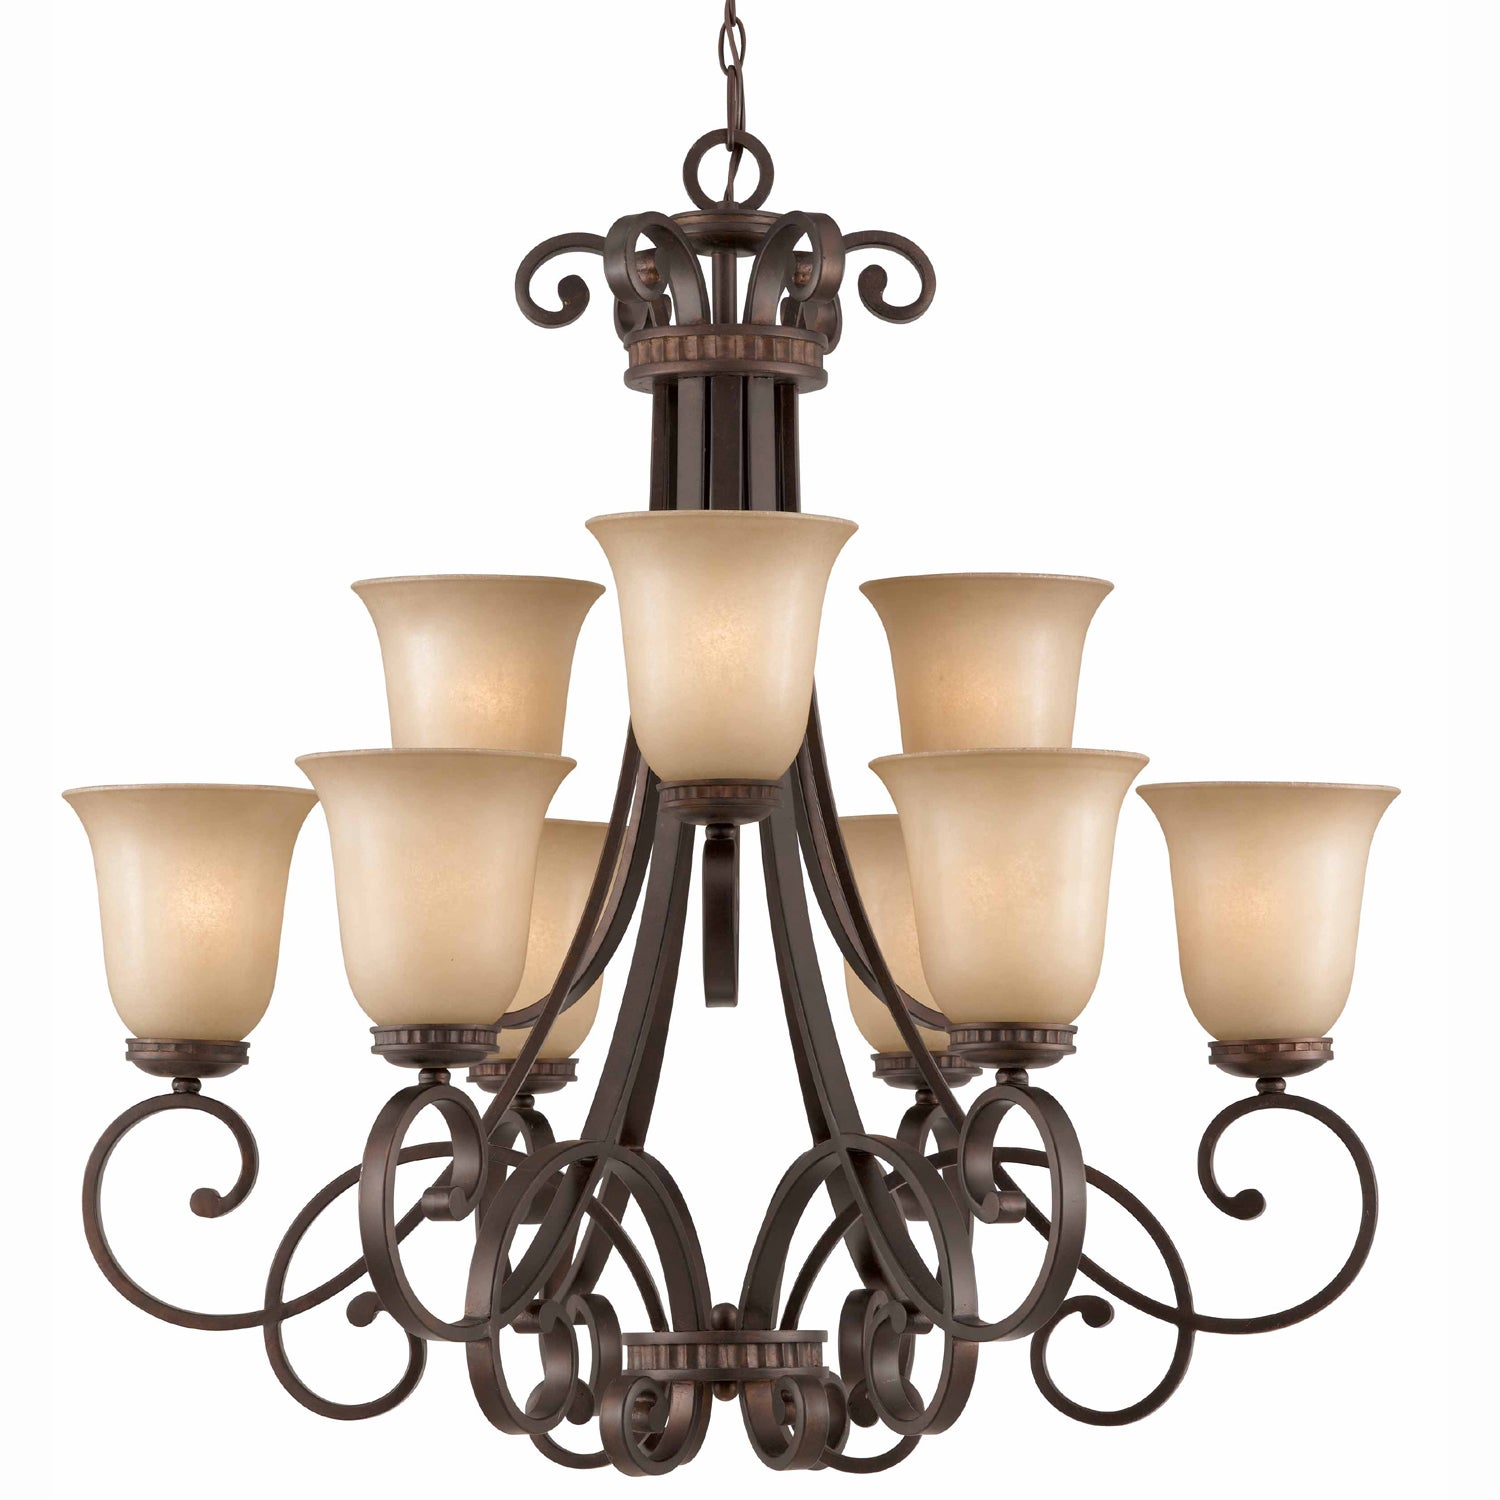 Corsica 9-light English Bronze Chandelier